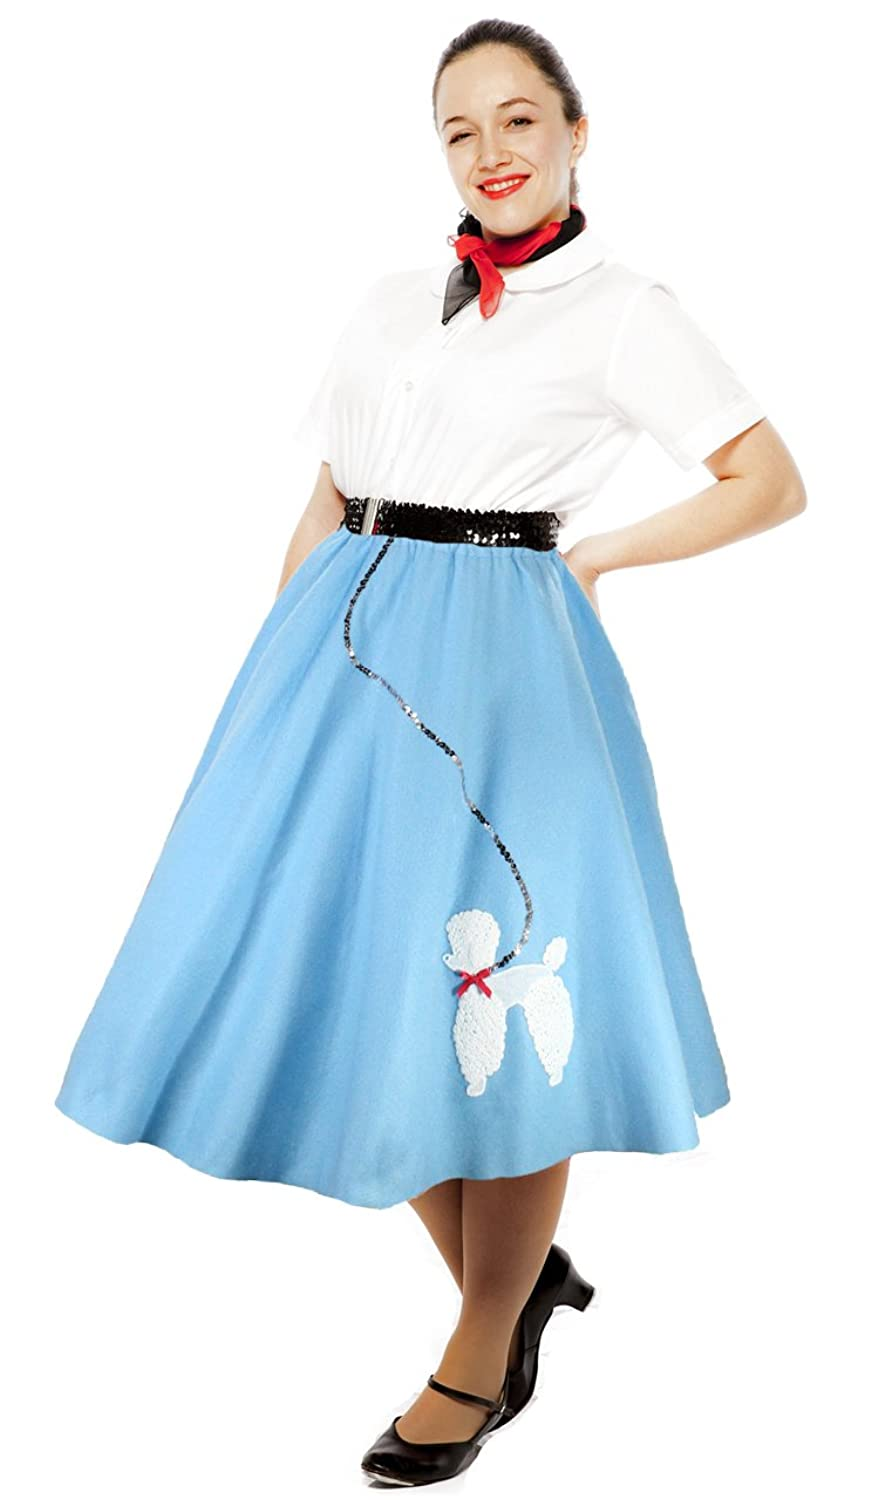 Retro Skirts: Vintage, Pencil, Circle, & Plus Sizes 50s Felt Poodle Skirt in Retro Colors - size Adult Medium / Large by Hey Viv ! $34.50 AT vintagedancer.com